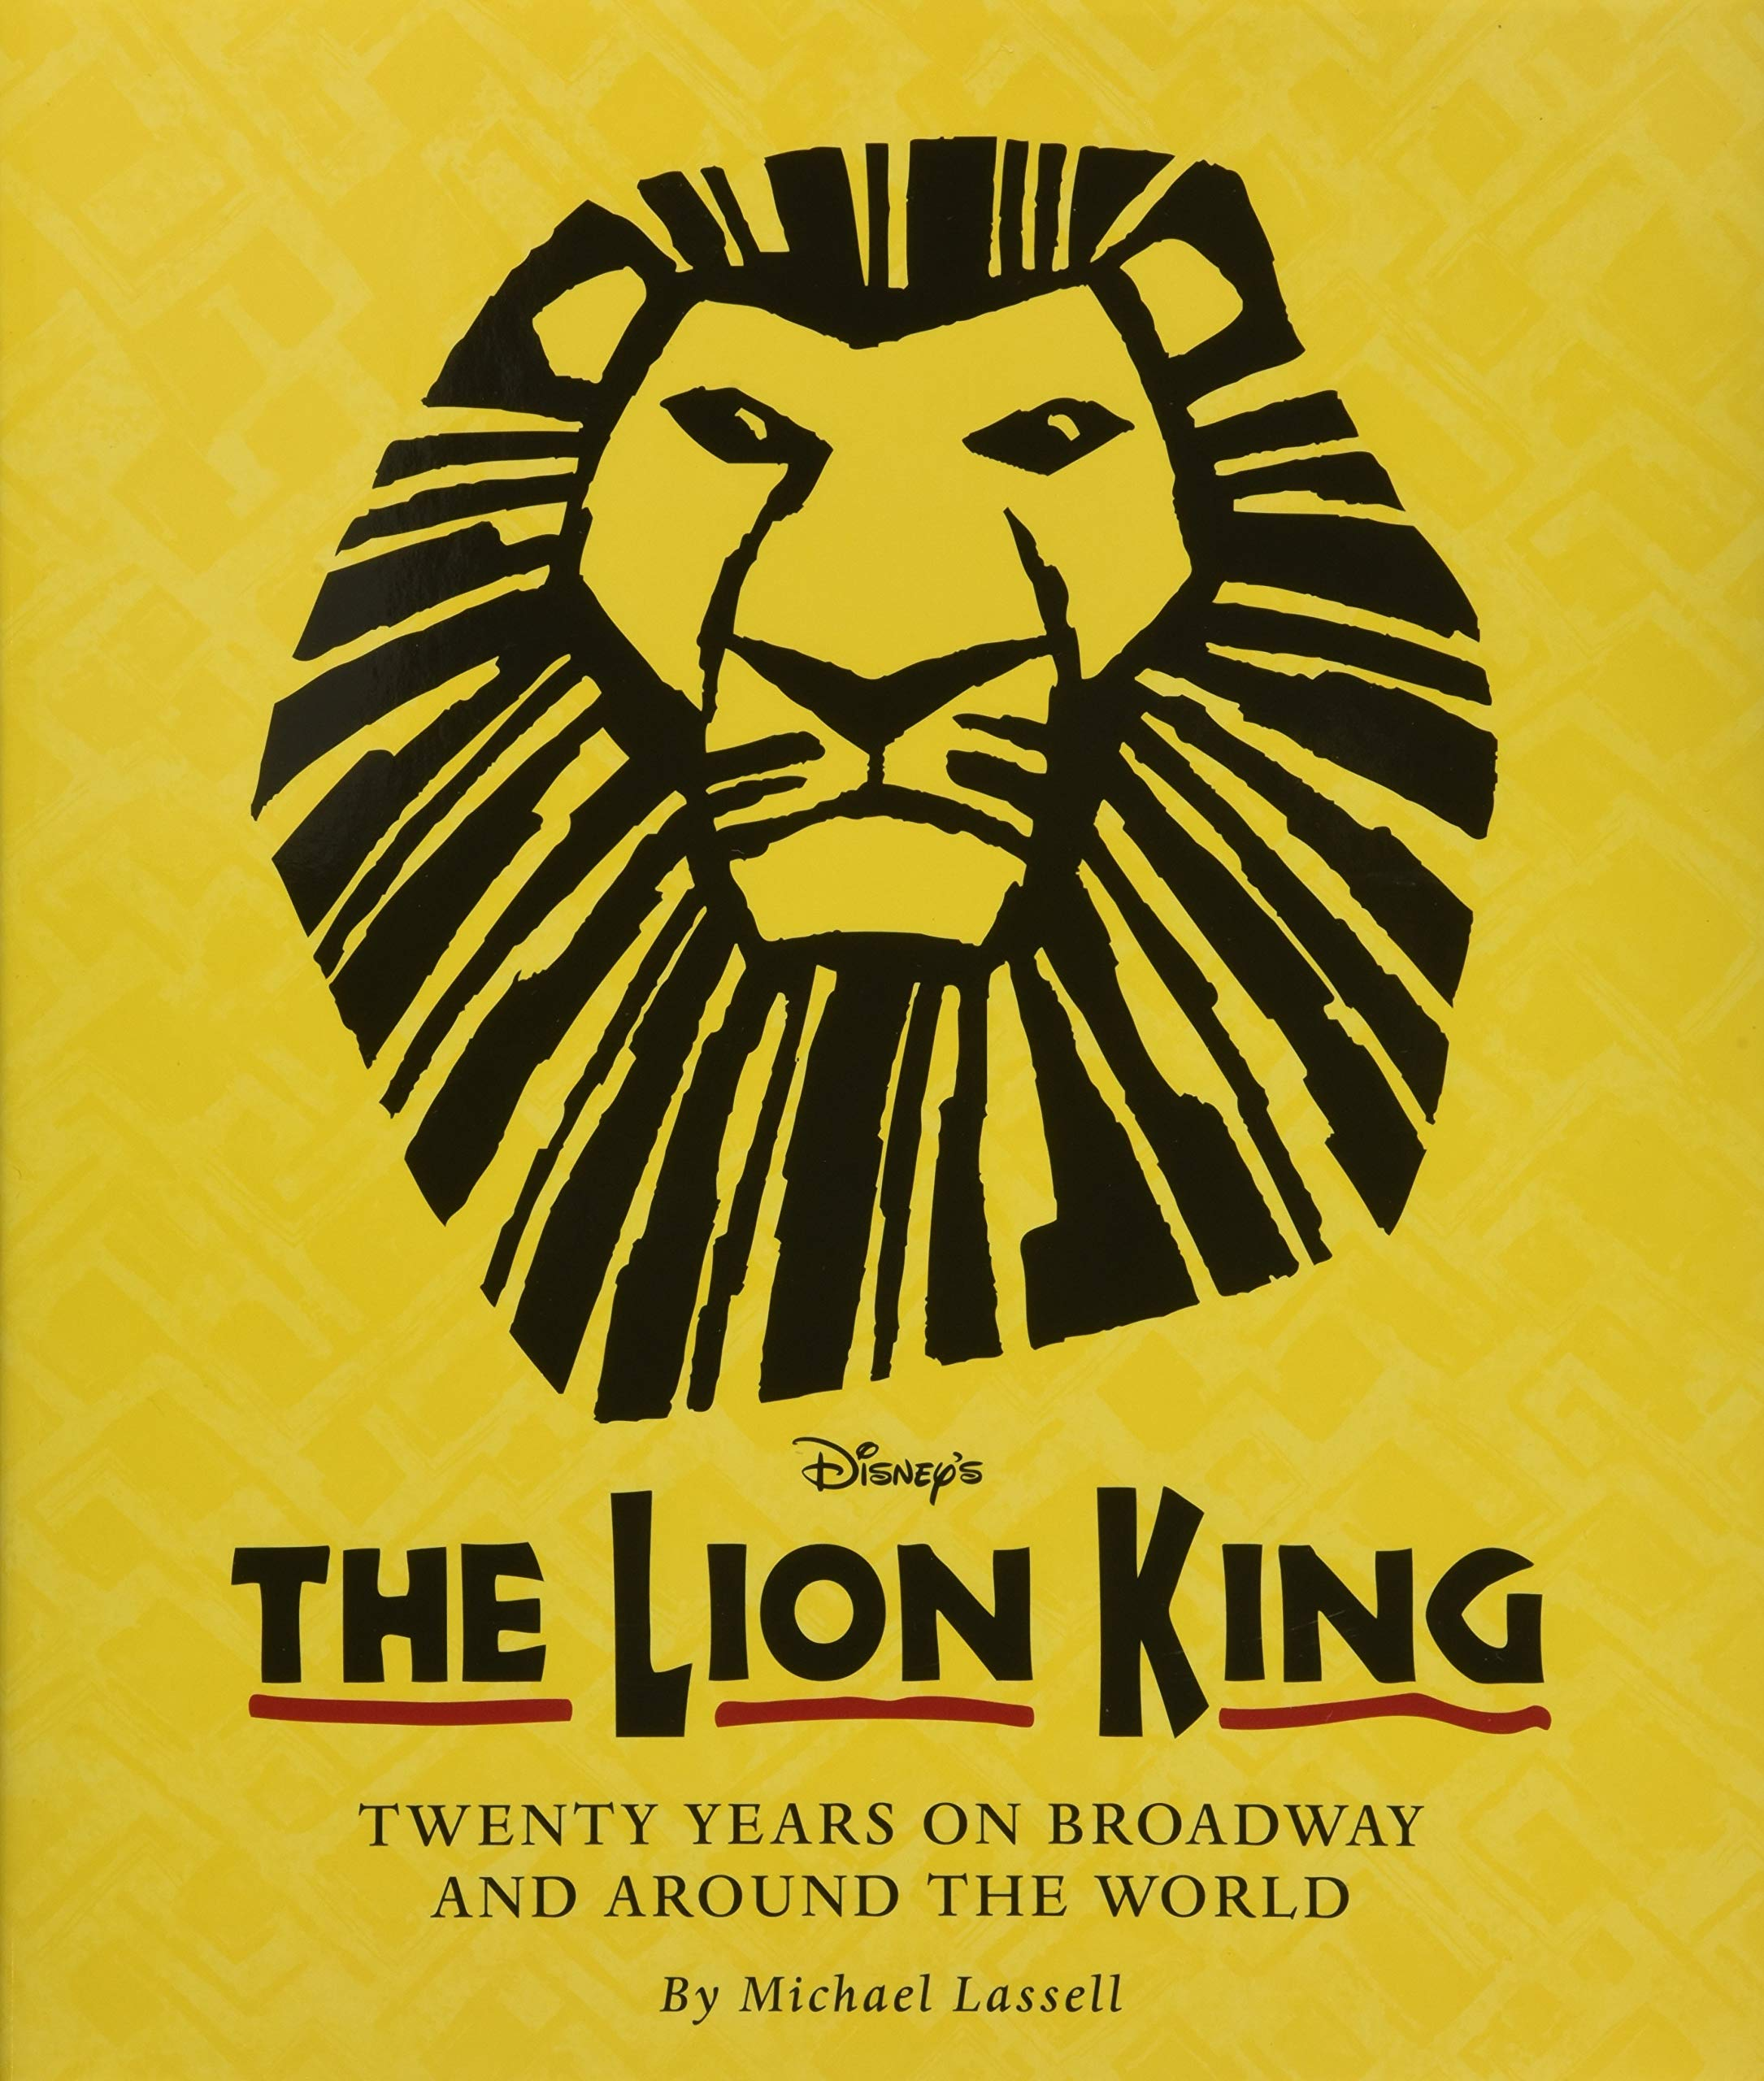 The Lion King: Twenty Years on Broadway and Around the World (A Disney Theatrical Souvenir Book) by Disney Editions